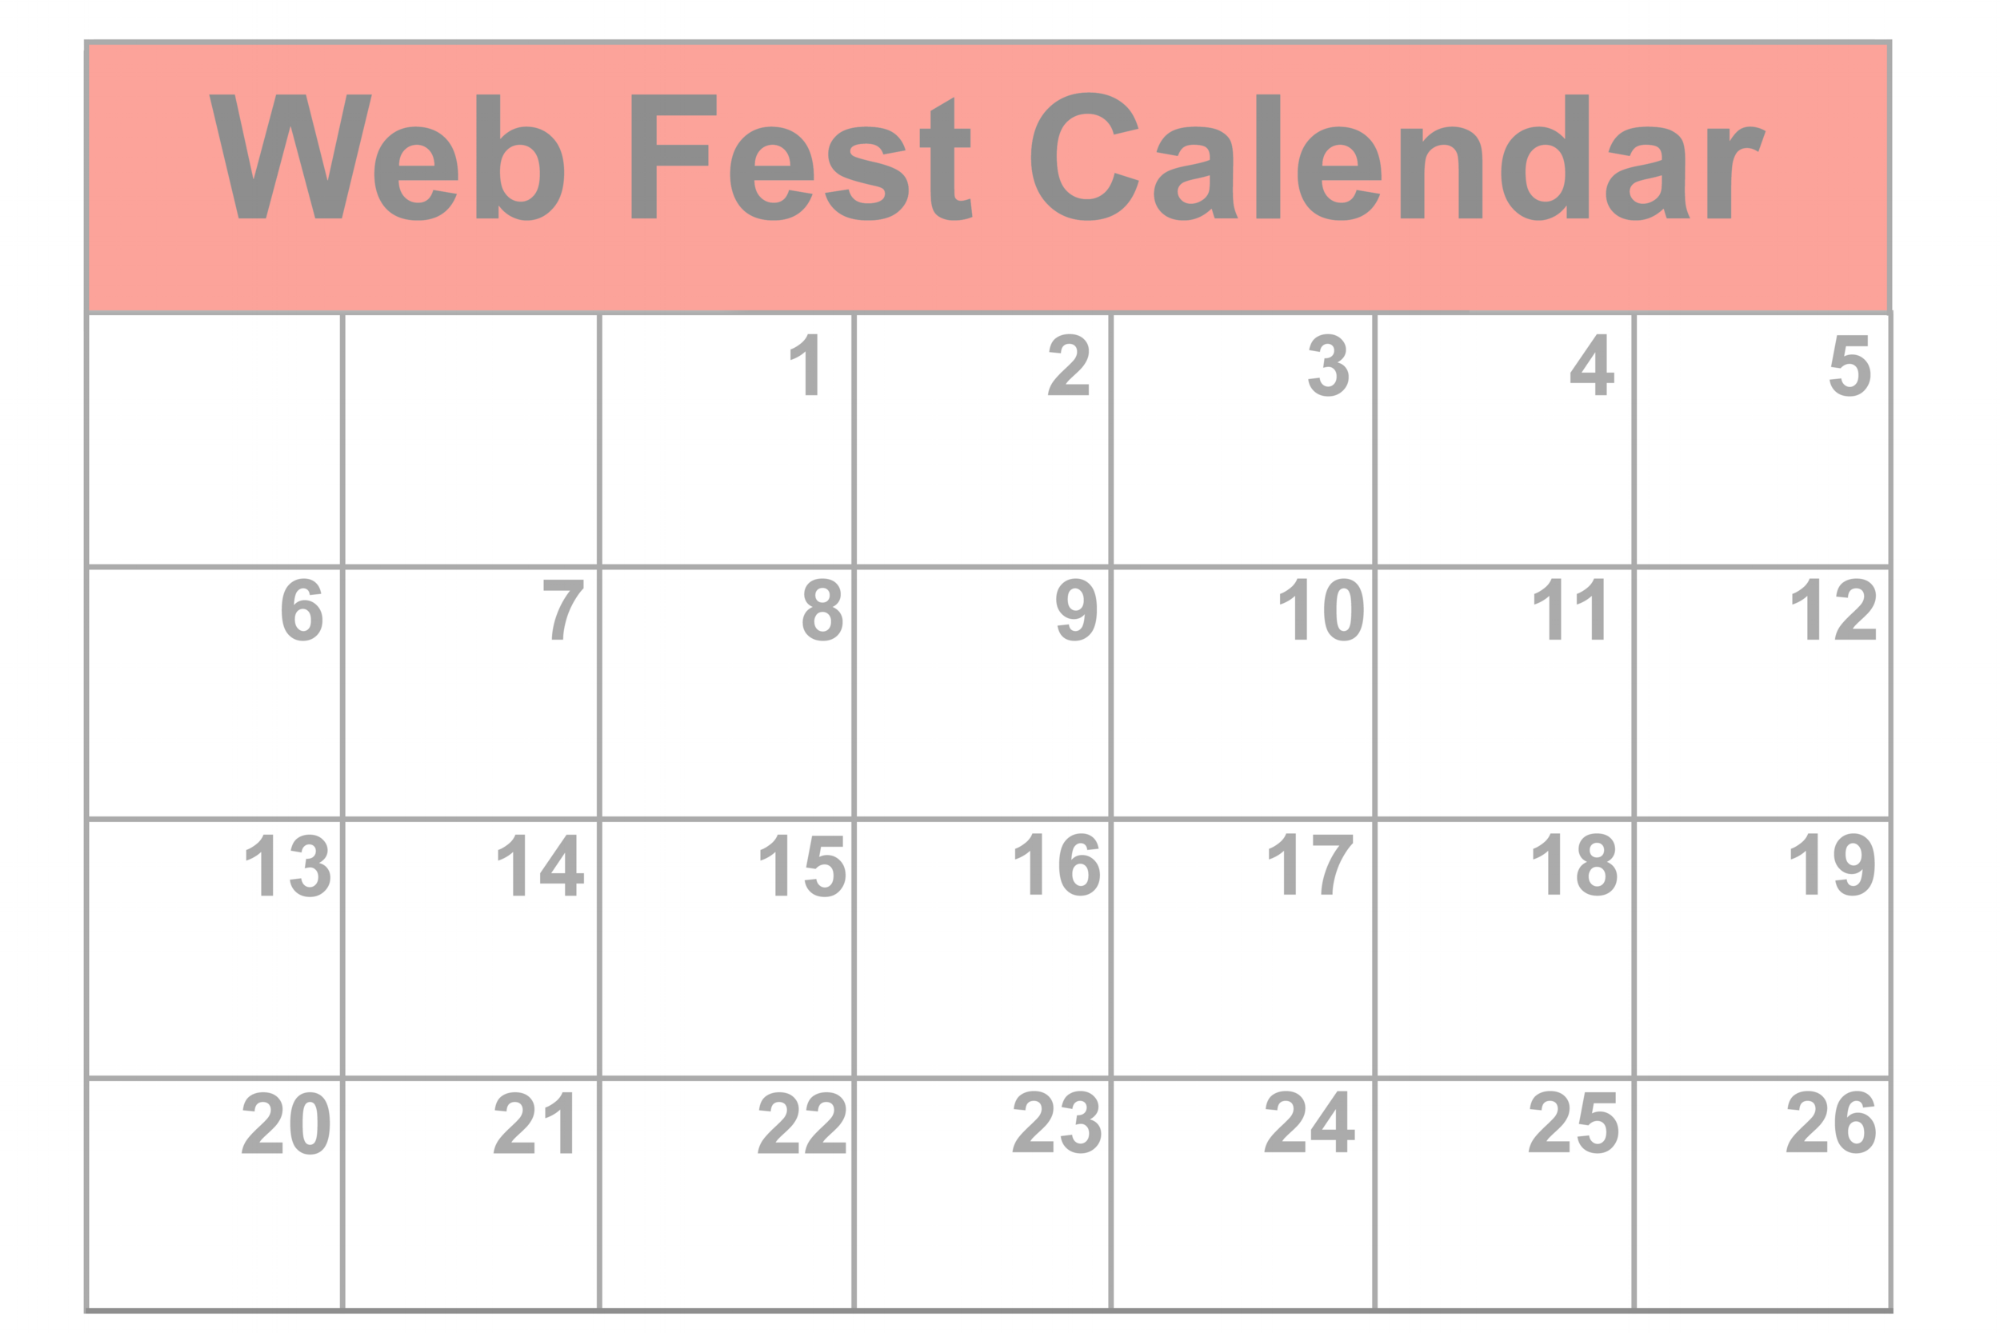 Check out the Web Fest Calendar